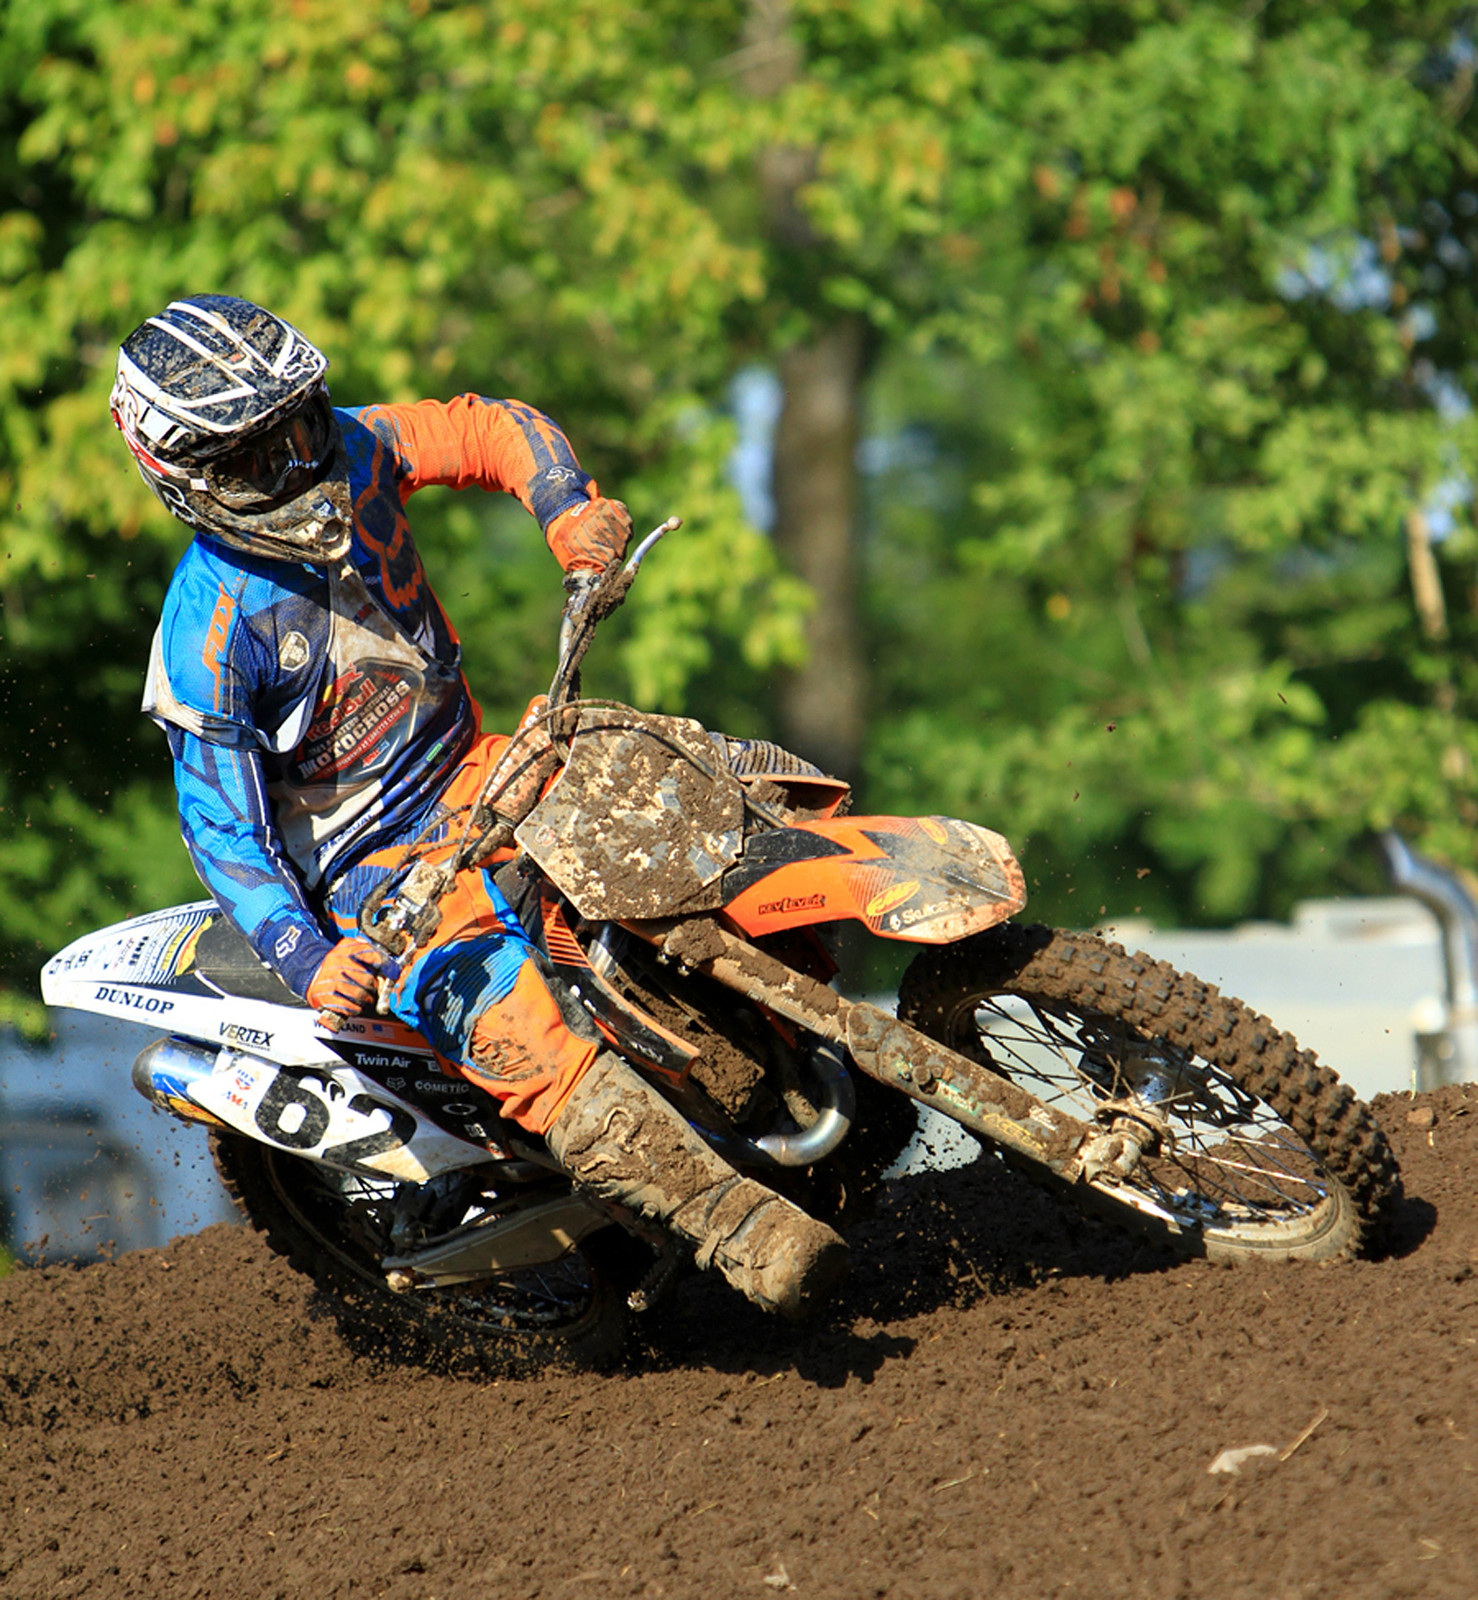 Jesse Wentland - Day 5: 2012 Red Bull AMA Amateur National Motocross Championships - Motocross Pictures - Vital MX